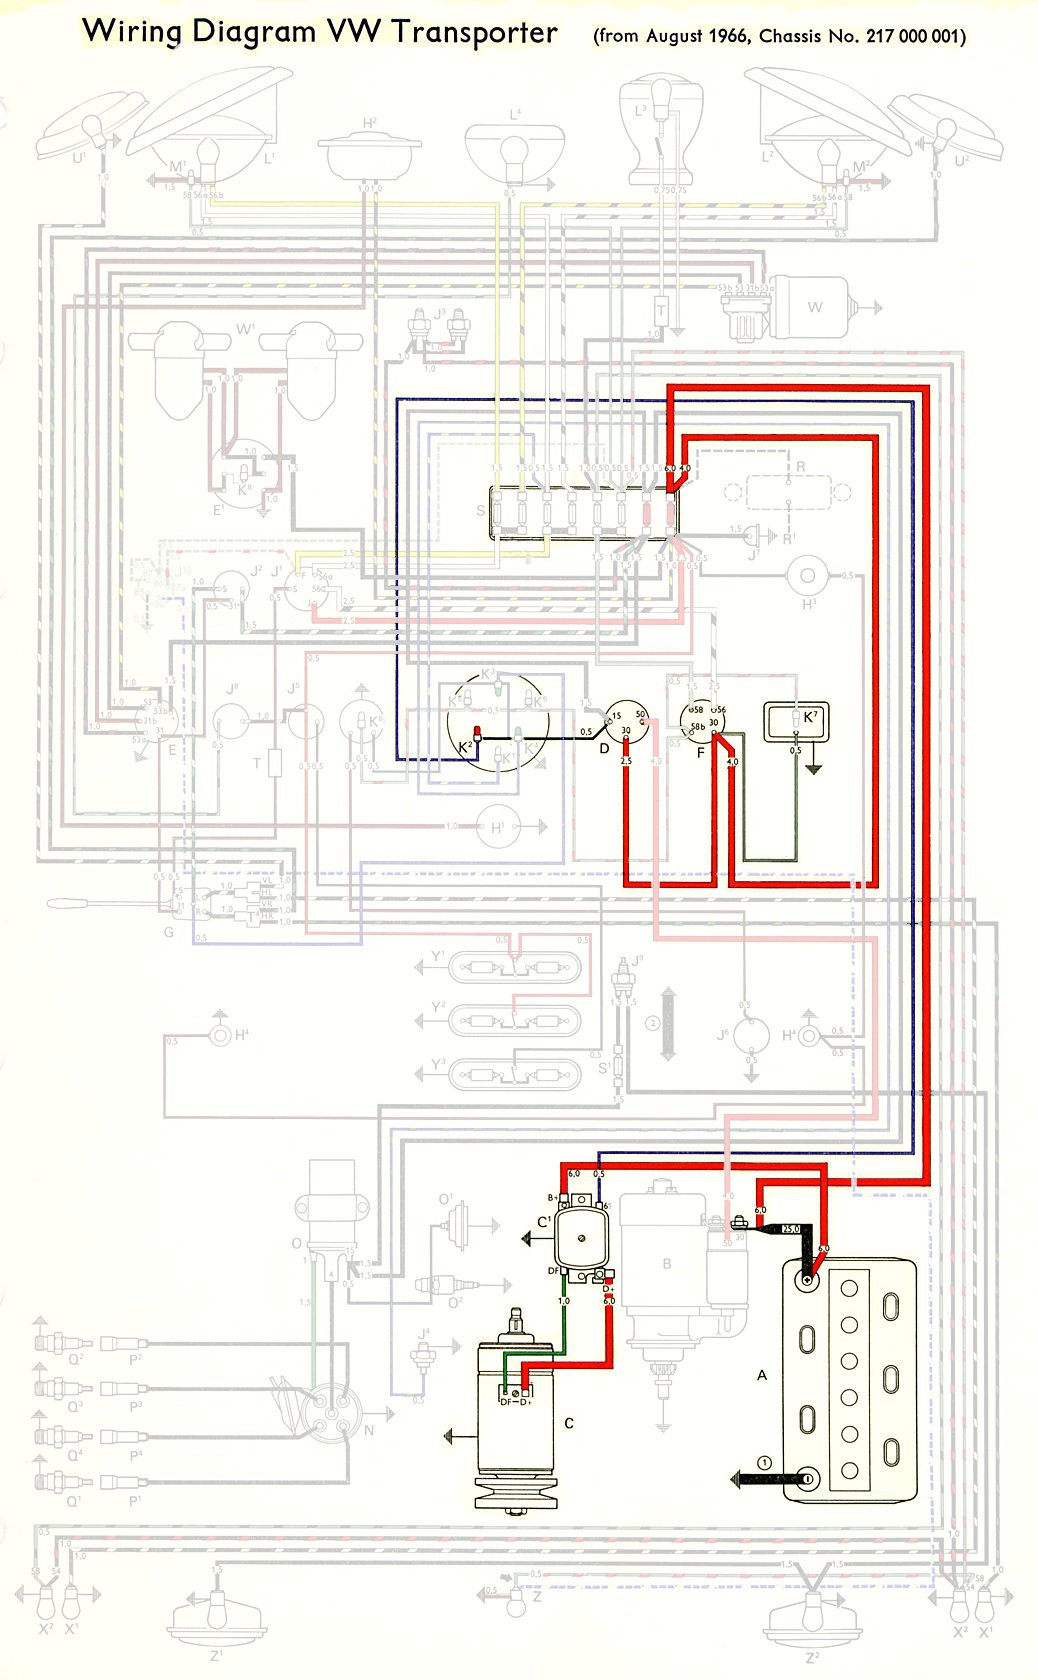 1967Bus_Eur_UnfusedSchematic ambulance wiring diagram elevator schematic diagram wiring diagram horton 4160 wiring diagram at gsmportal.co